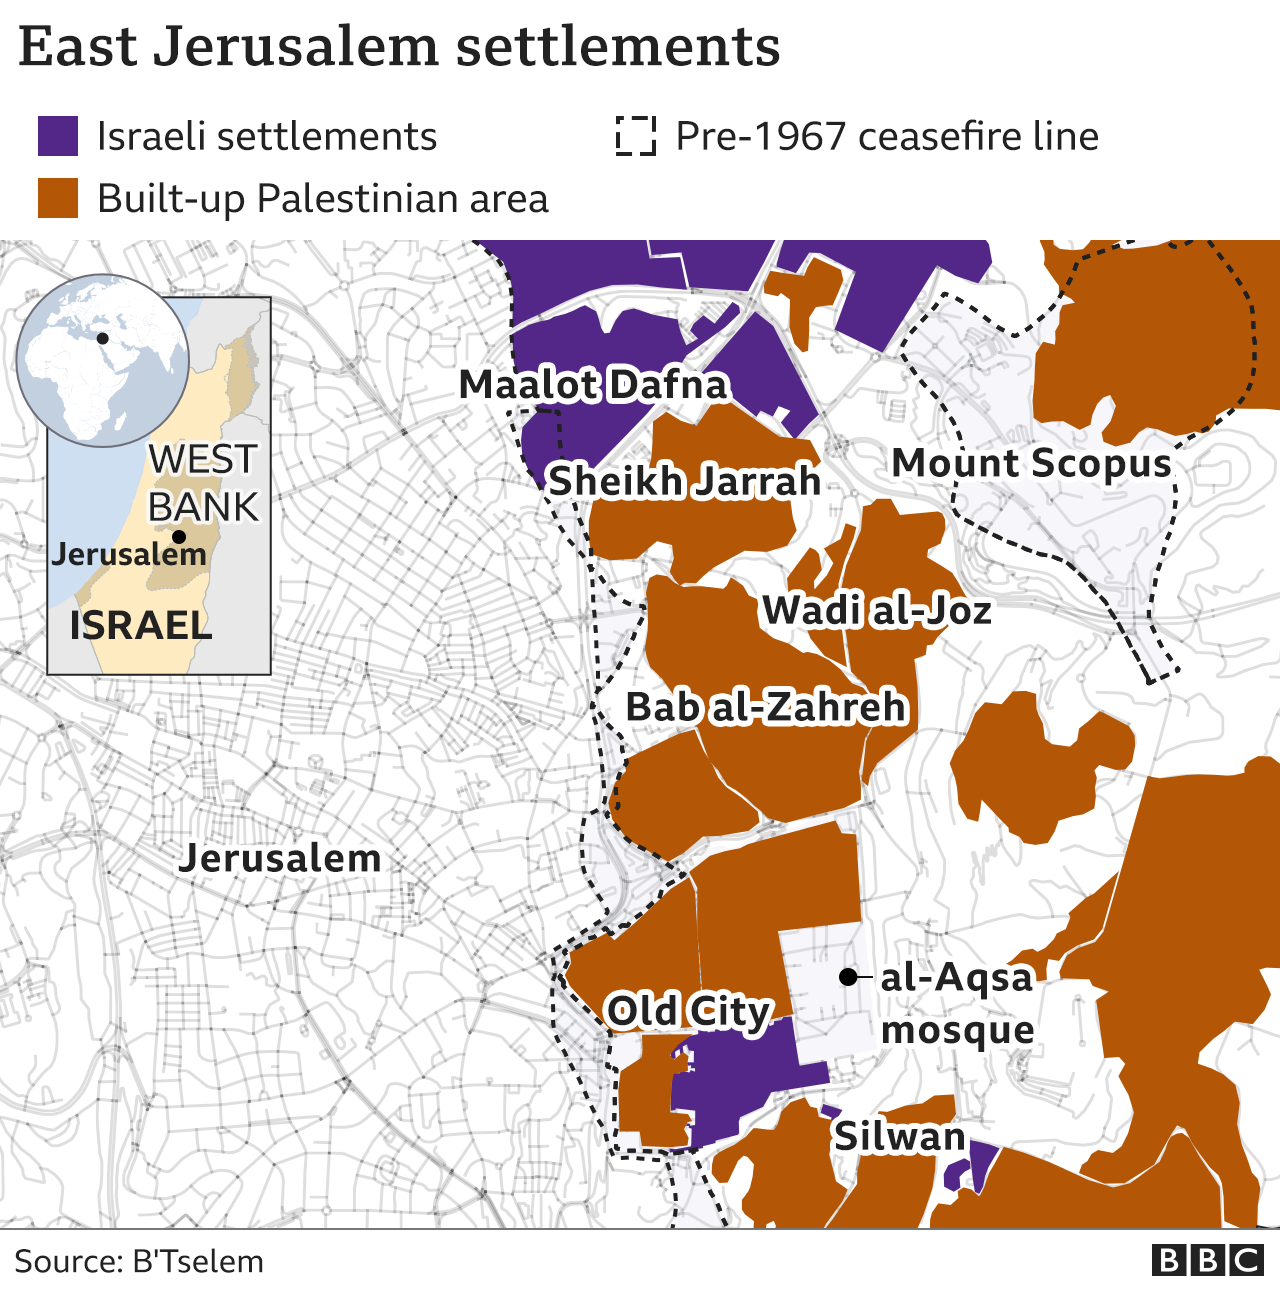 Map showing locations of Israeli settlements and Palestinian built-up areas in East Jerusalem, including Sheikh Jarrah